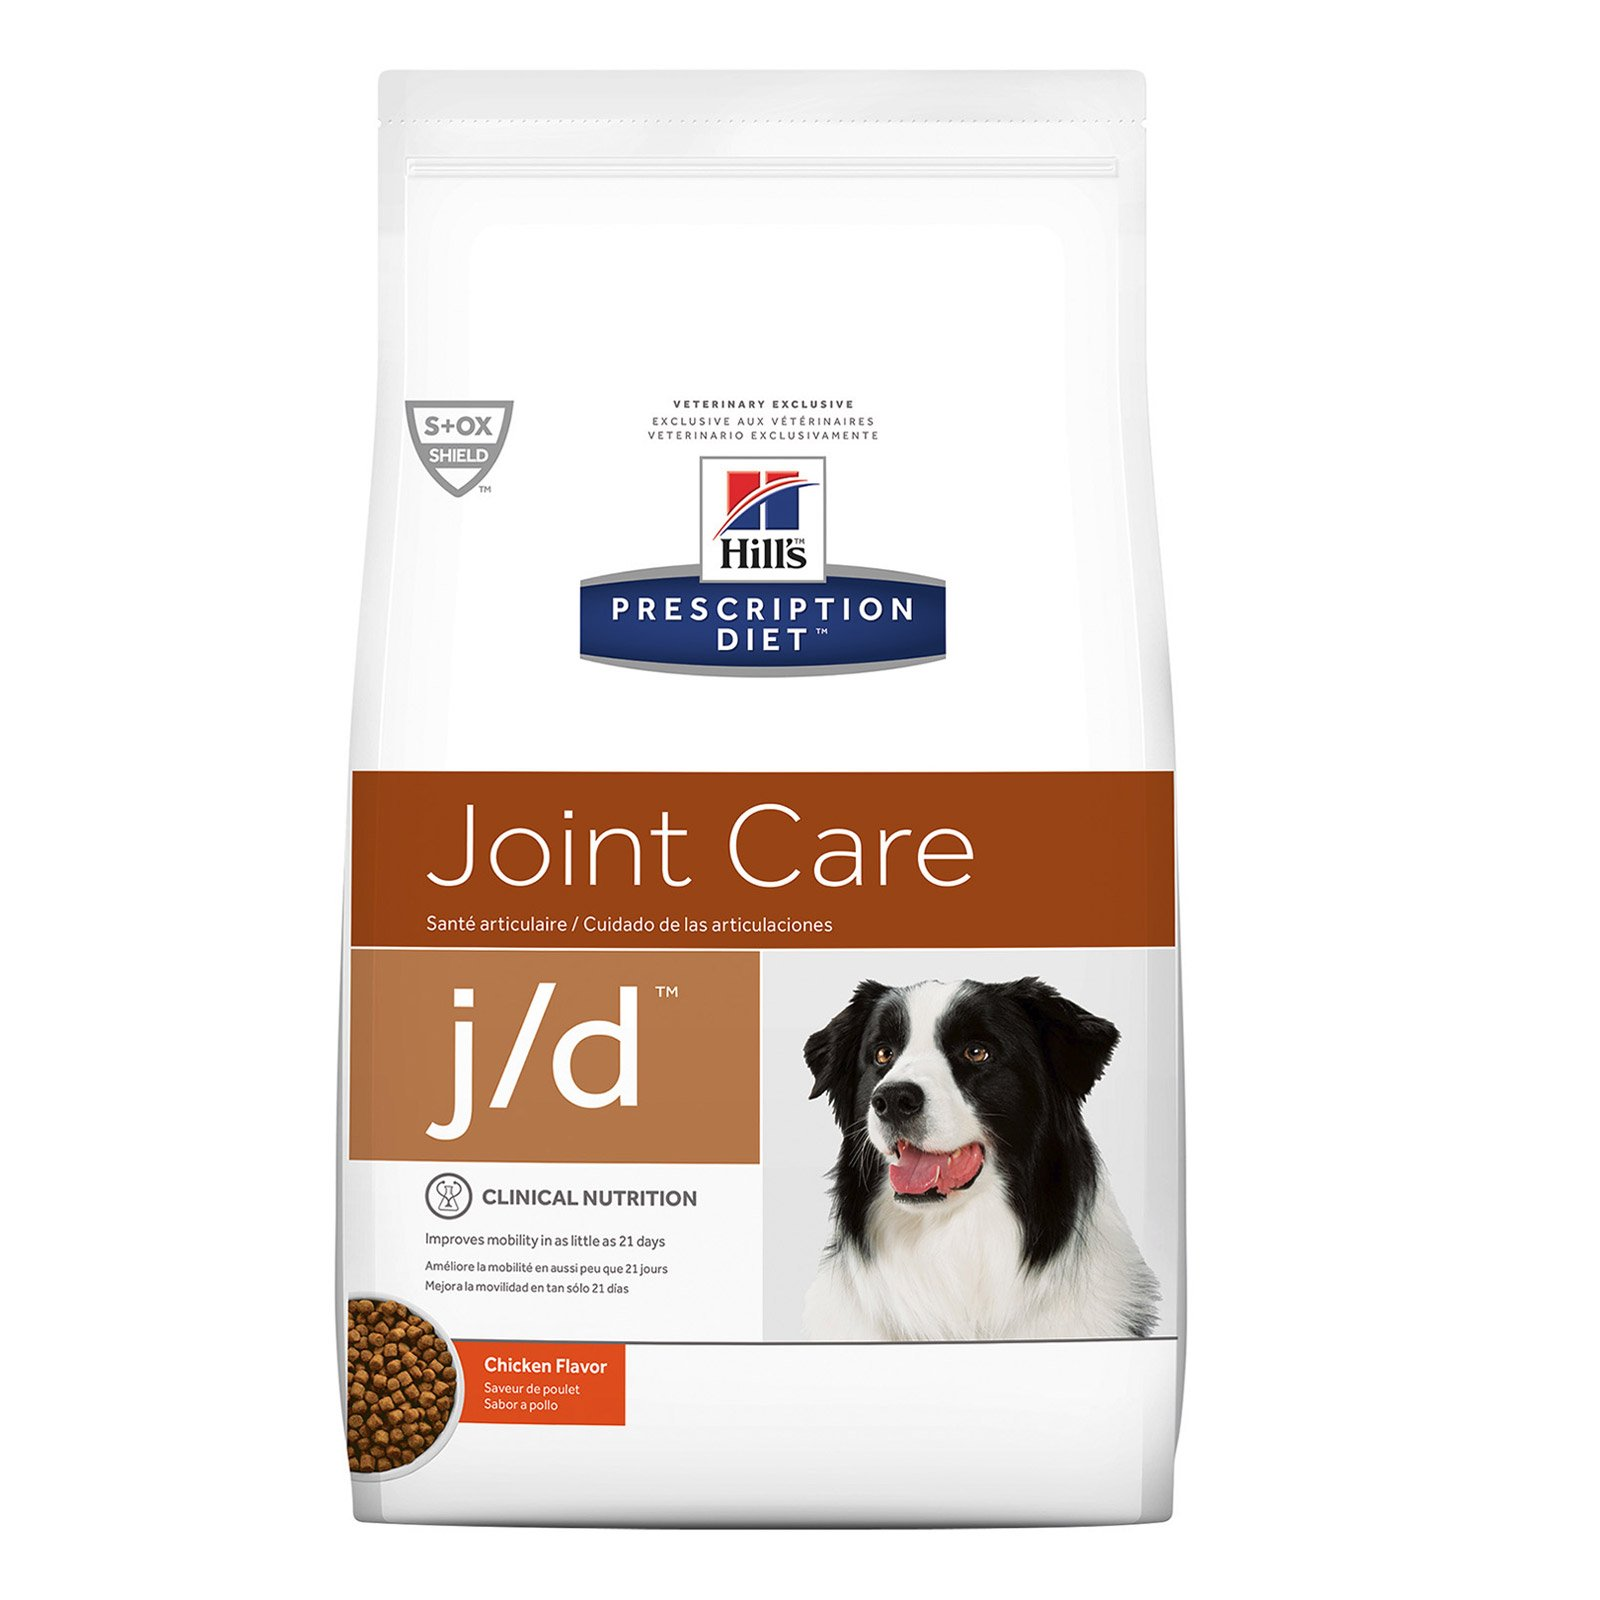 Hill's Prescription Diet j/d Joint Care with Chicken Dry Dog Food